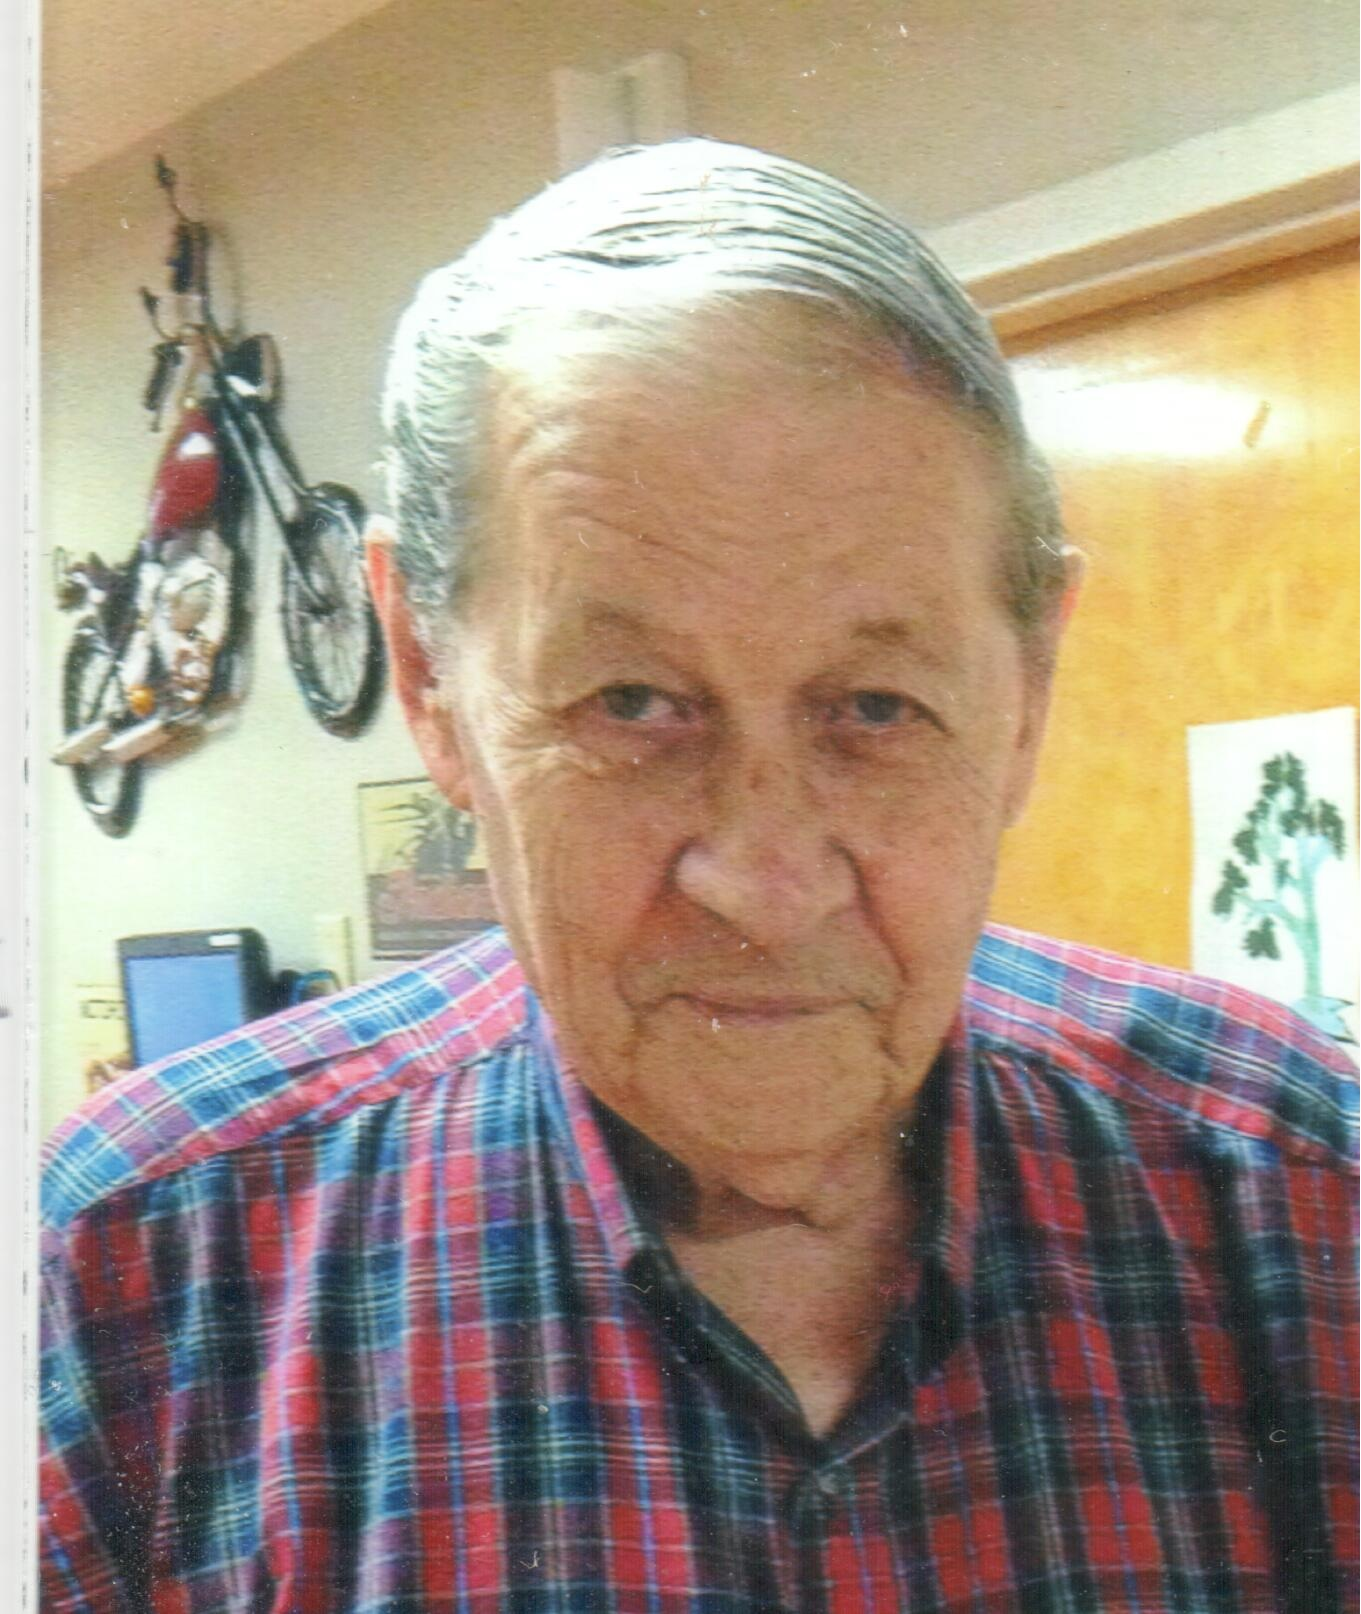 Donald D. Neukam, age 83 of Dubois